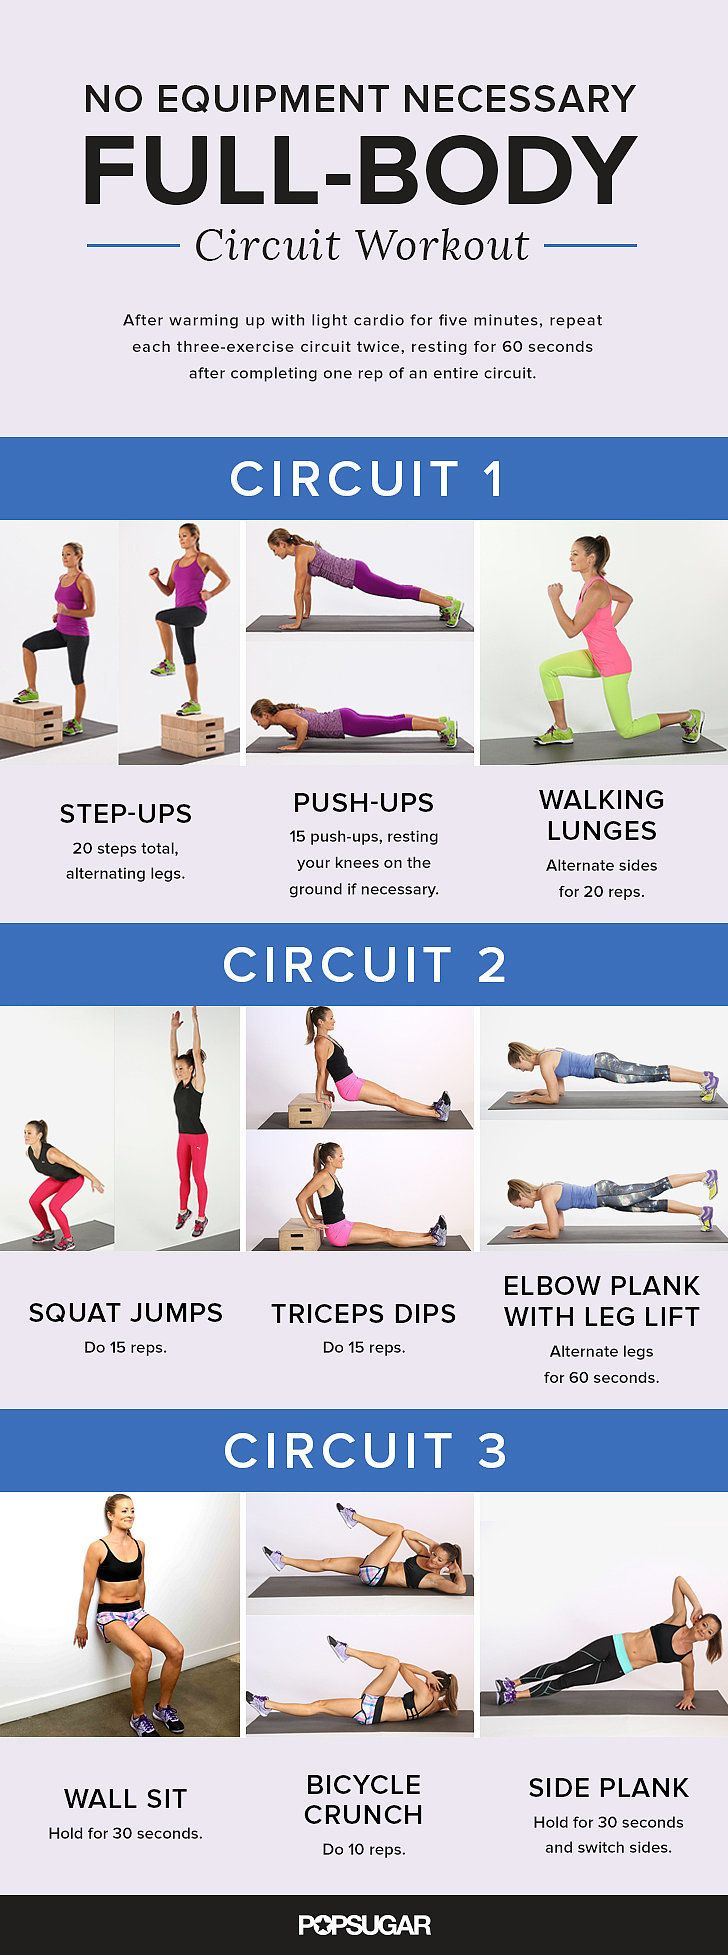 Printable Full-Body Circuit Workout — No Equipment Needed ...